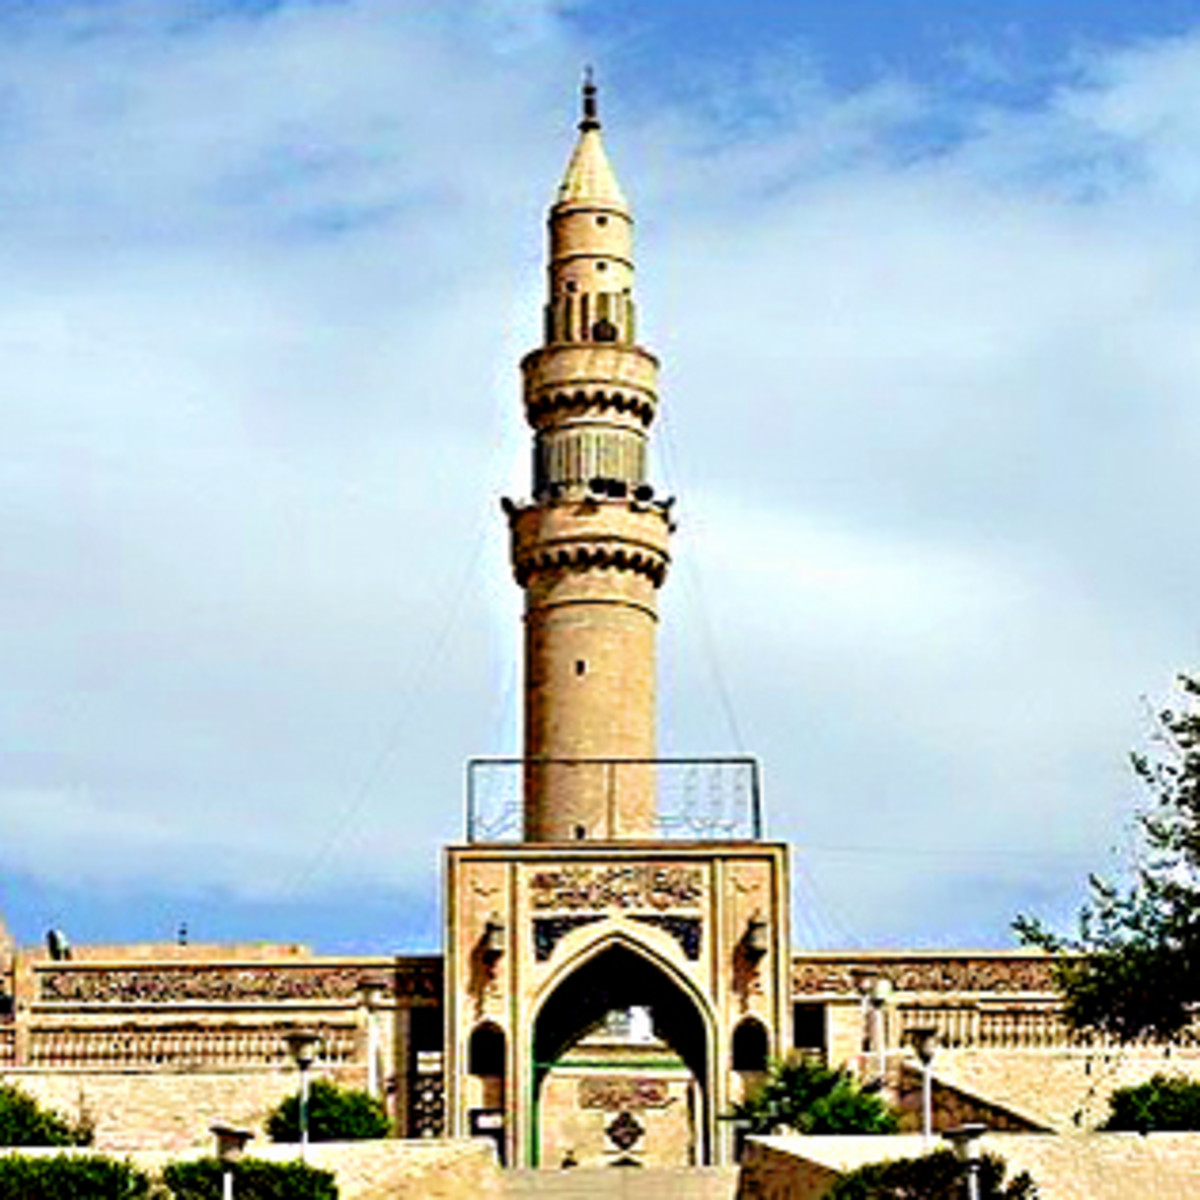 The historic Mosque of the Prophet Younis (Jonah)  - destroyed by ISIL in 2015